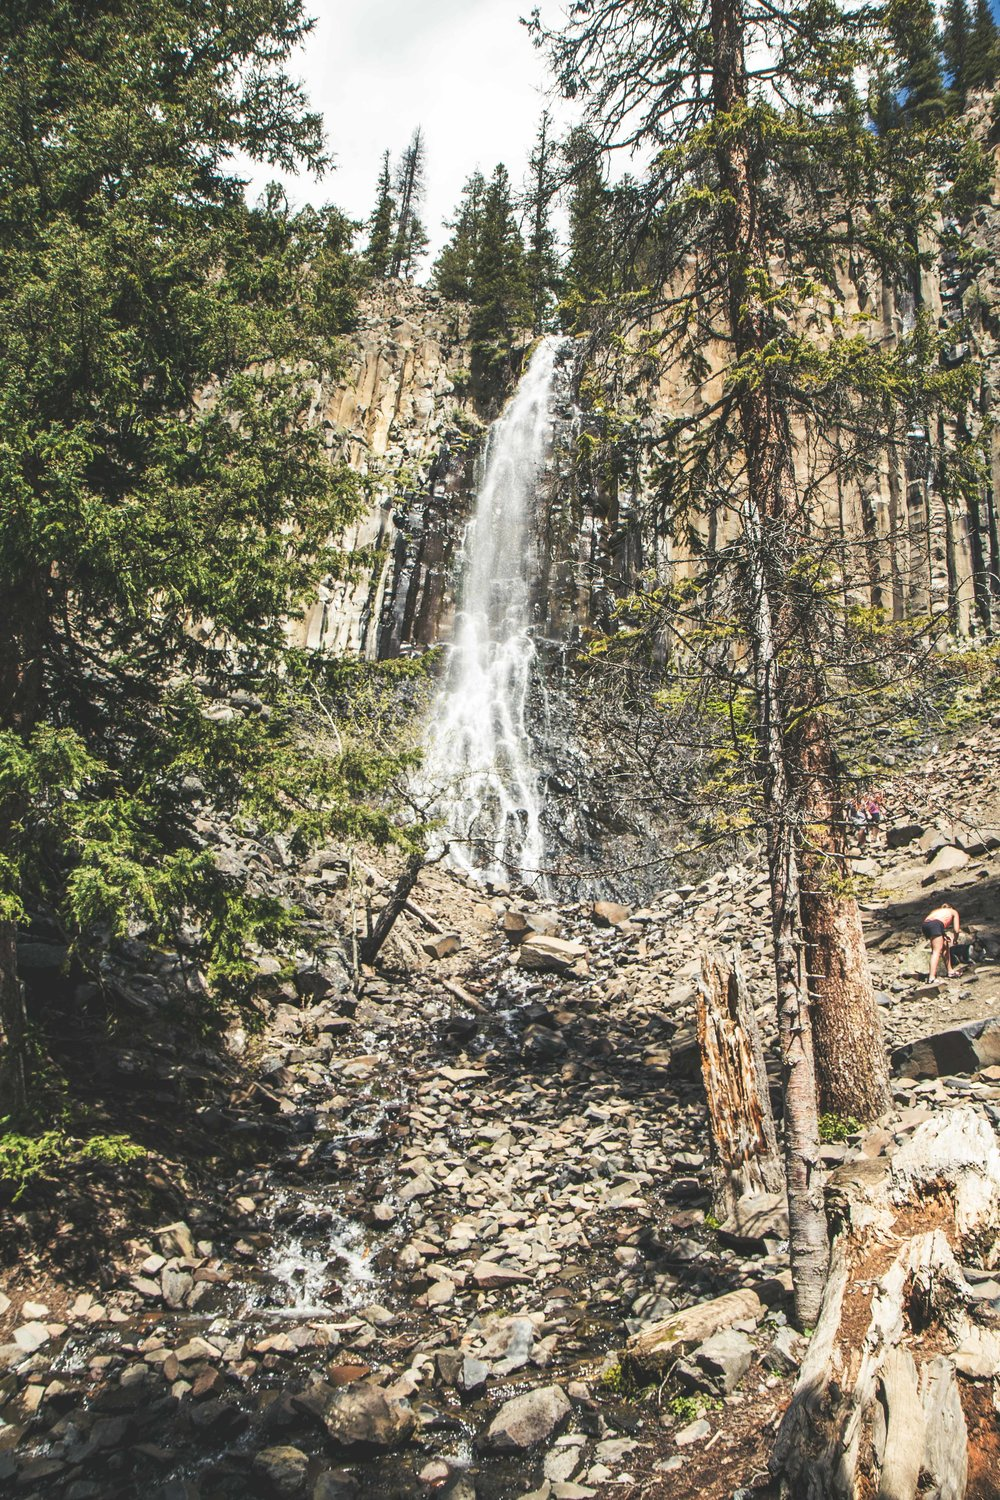 Hiking to Palisade Falls at Hyalite Reservoir near Bozeman, Montana